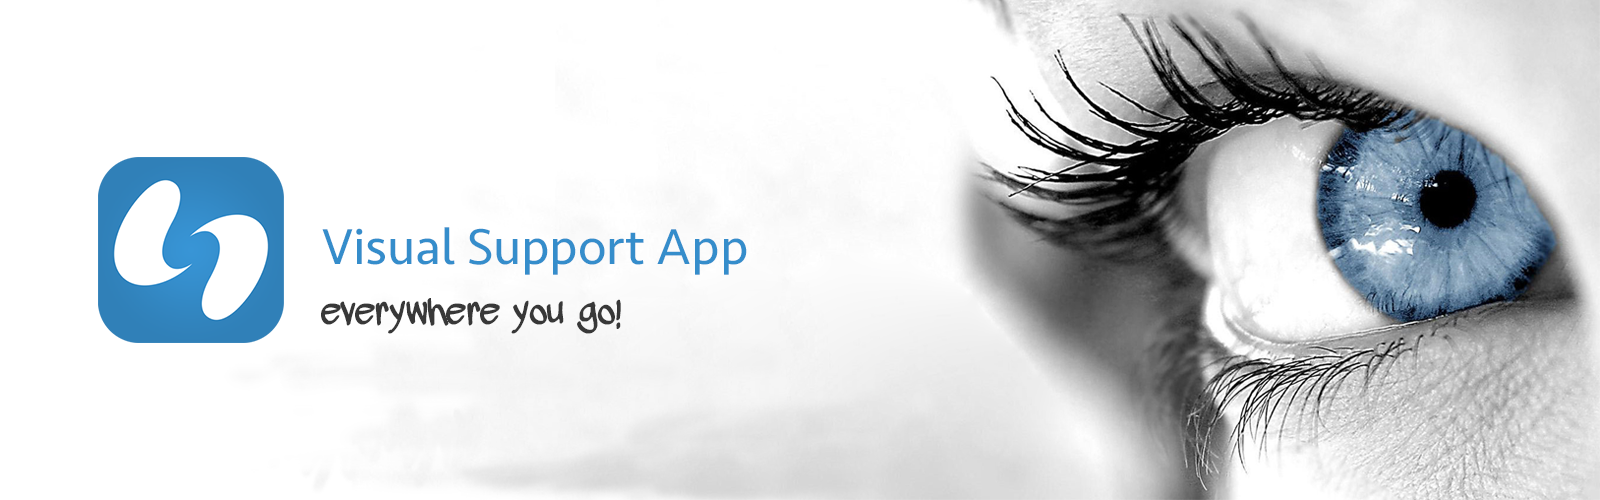 Visual Support App, everywhere you go